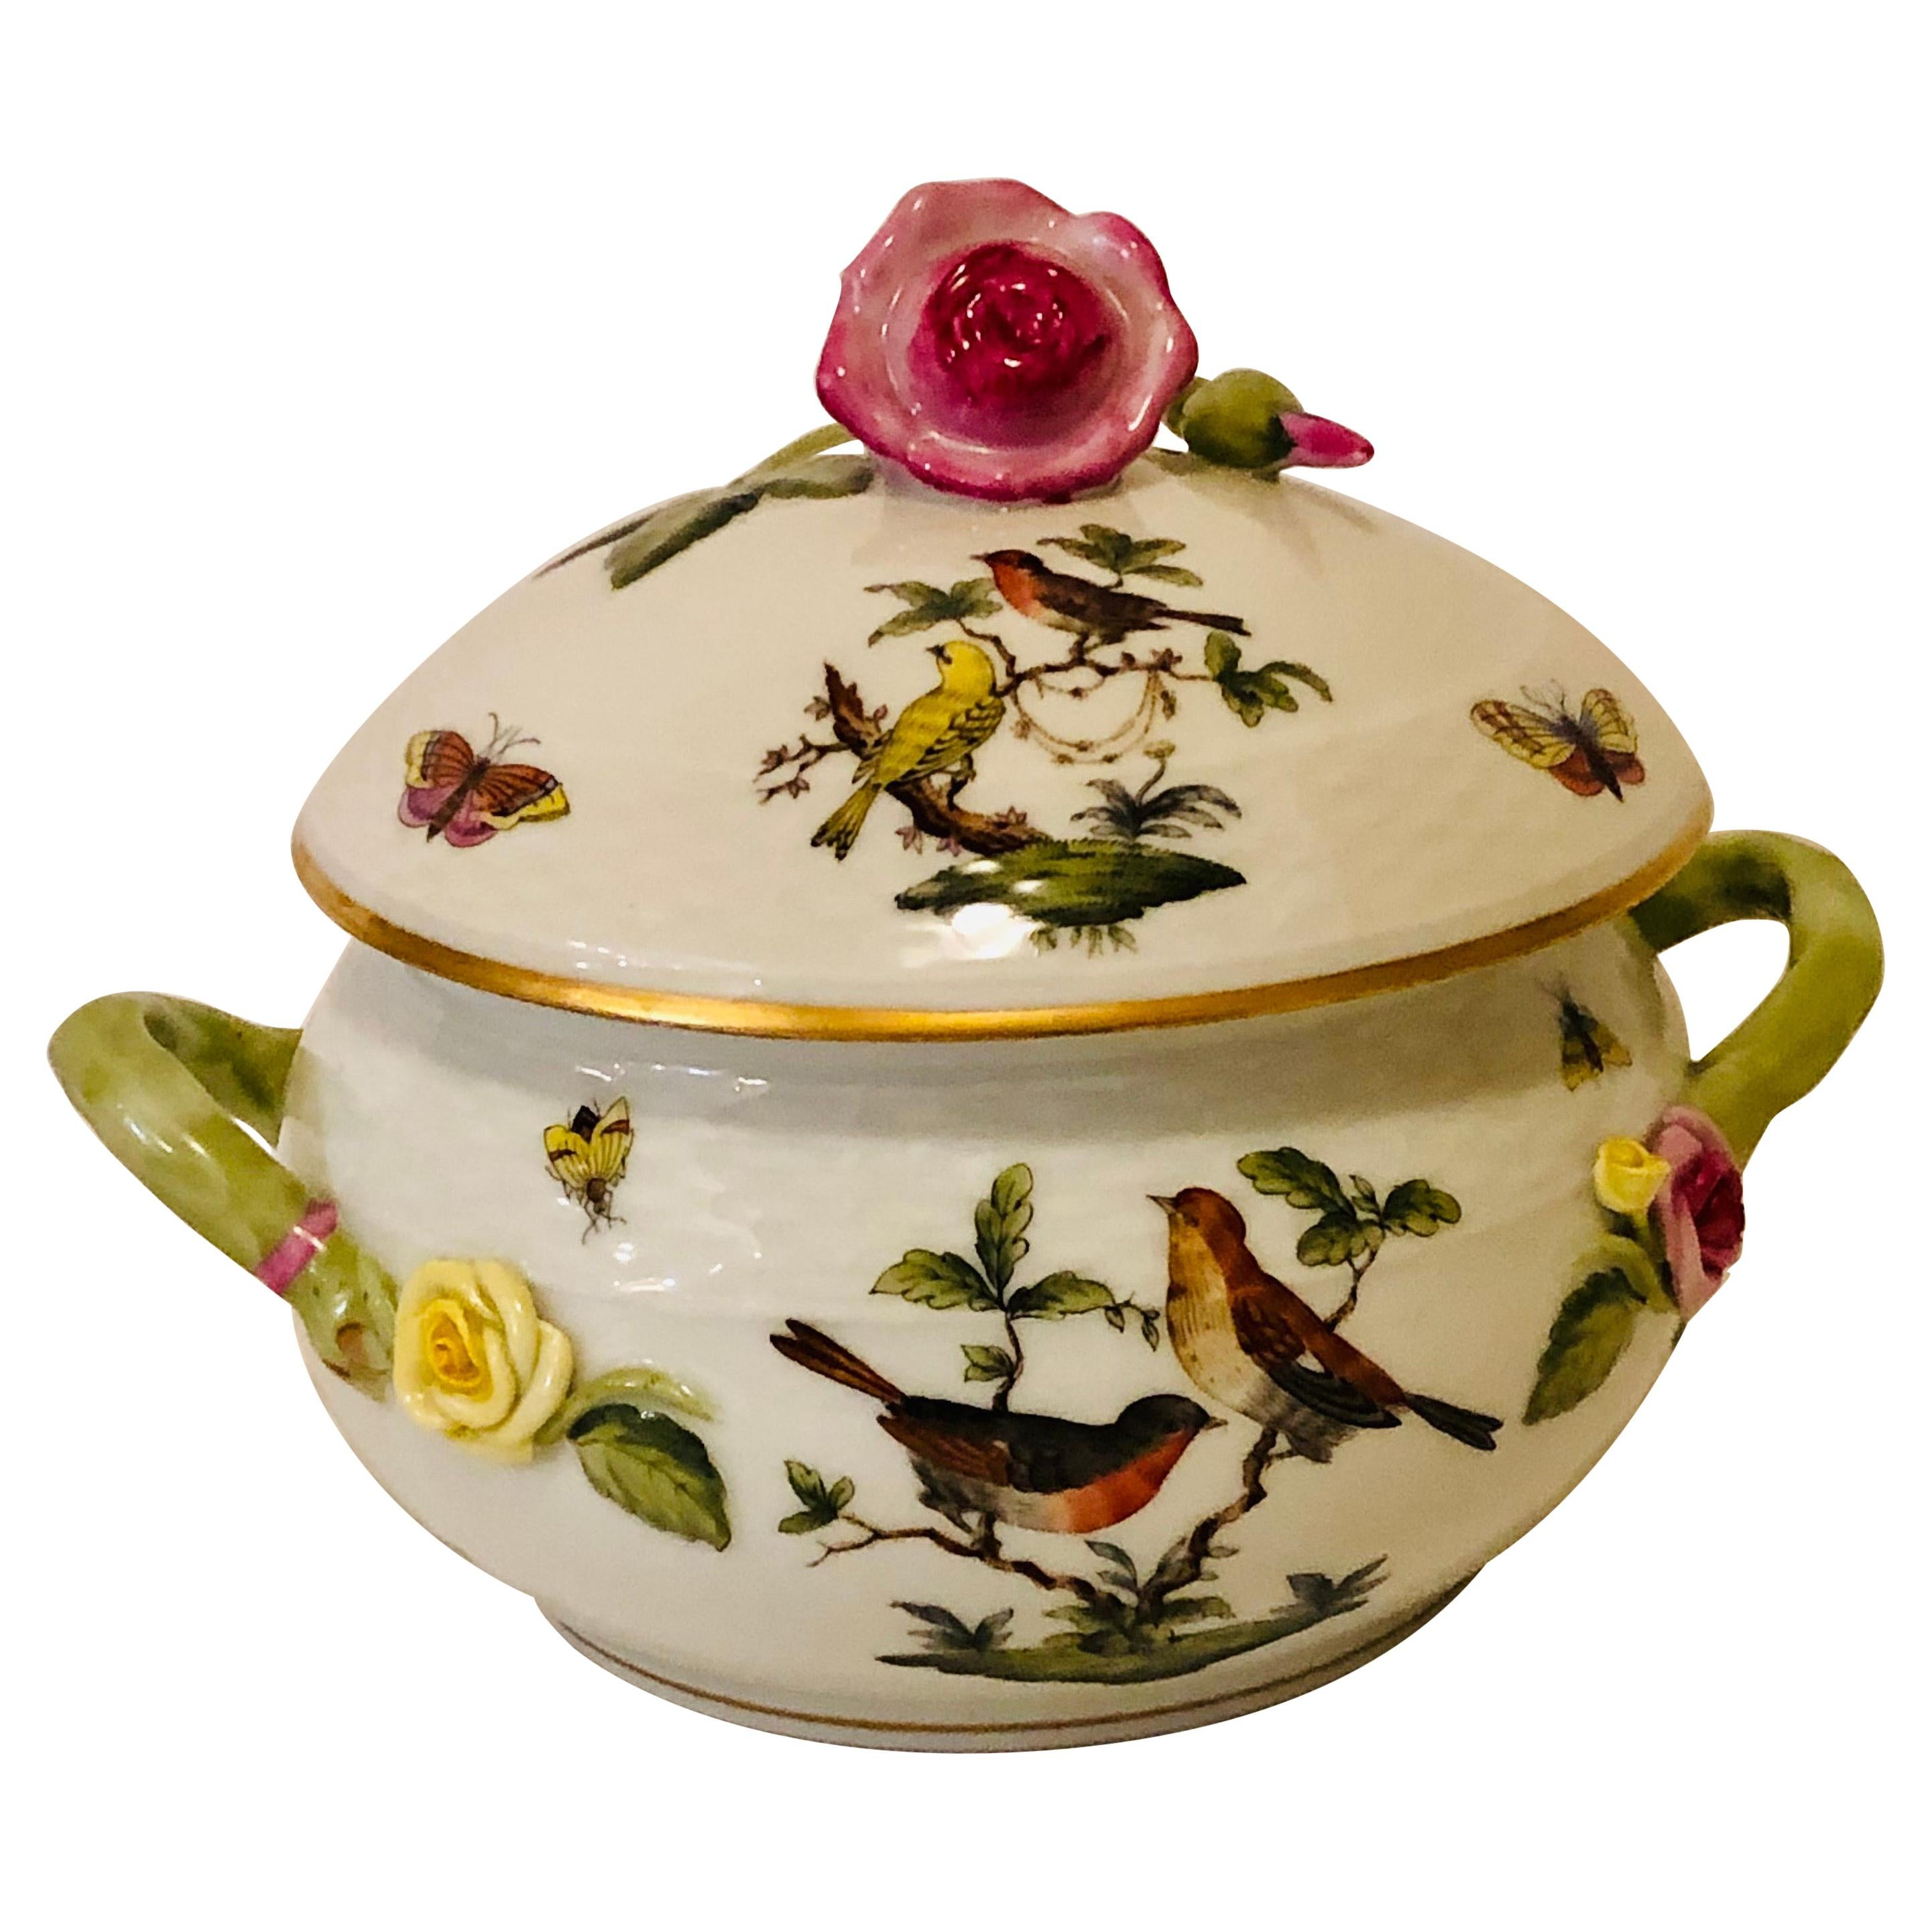 Herend Rothschild Bird Covered Bowl with Raised Pink Rose and Rose Bud on Top